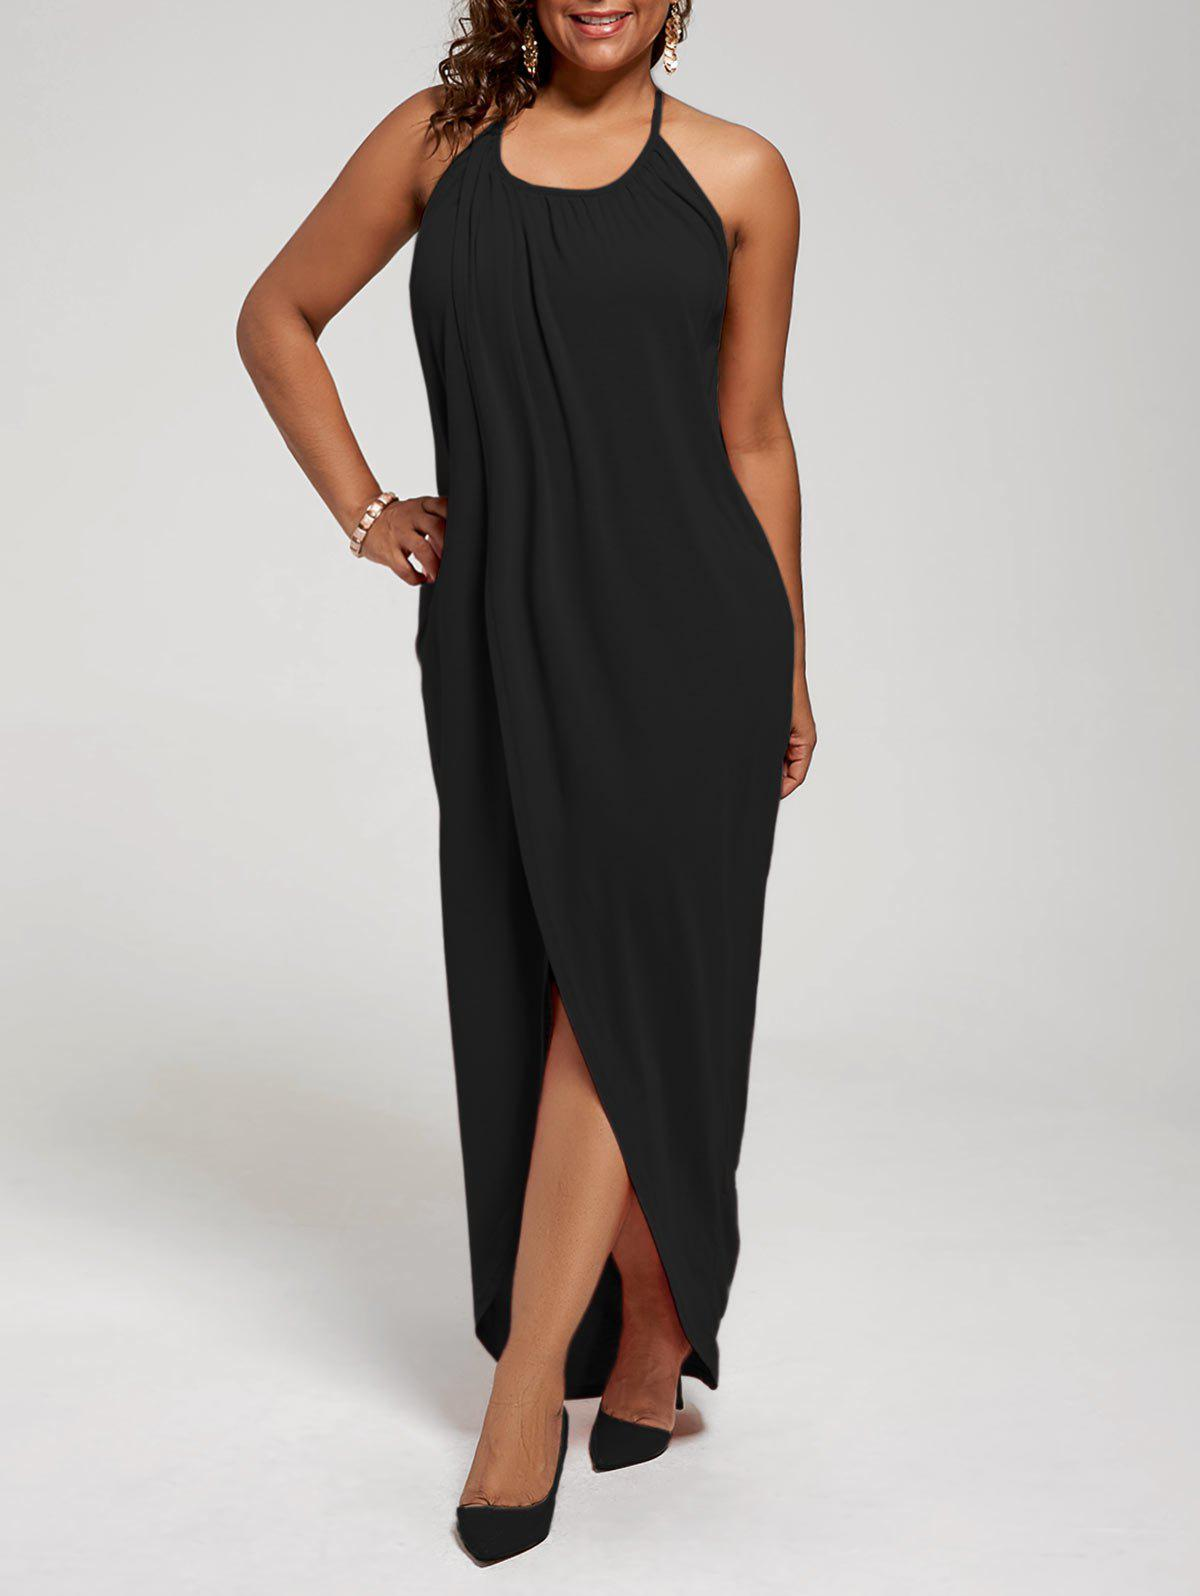 Plus Size Halter High Slit Maxi DressWOMEN<br><br>Size: 3XL; Color: BLACK; Style: Casual; Material: Polyester,Spandex; Silhouette: Sheath; Dresses Length: Ankle-Length; Neckline: Halter; Sleeve Length: Sleeveless; Pattern Type: Solid Color; With Belt: No; Season: Summer; Weight: 0.3500kg; Package Contents: 1 x Dress;